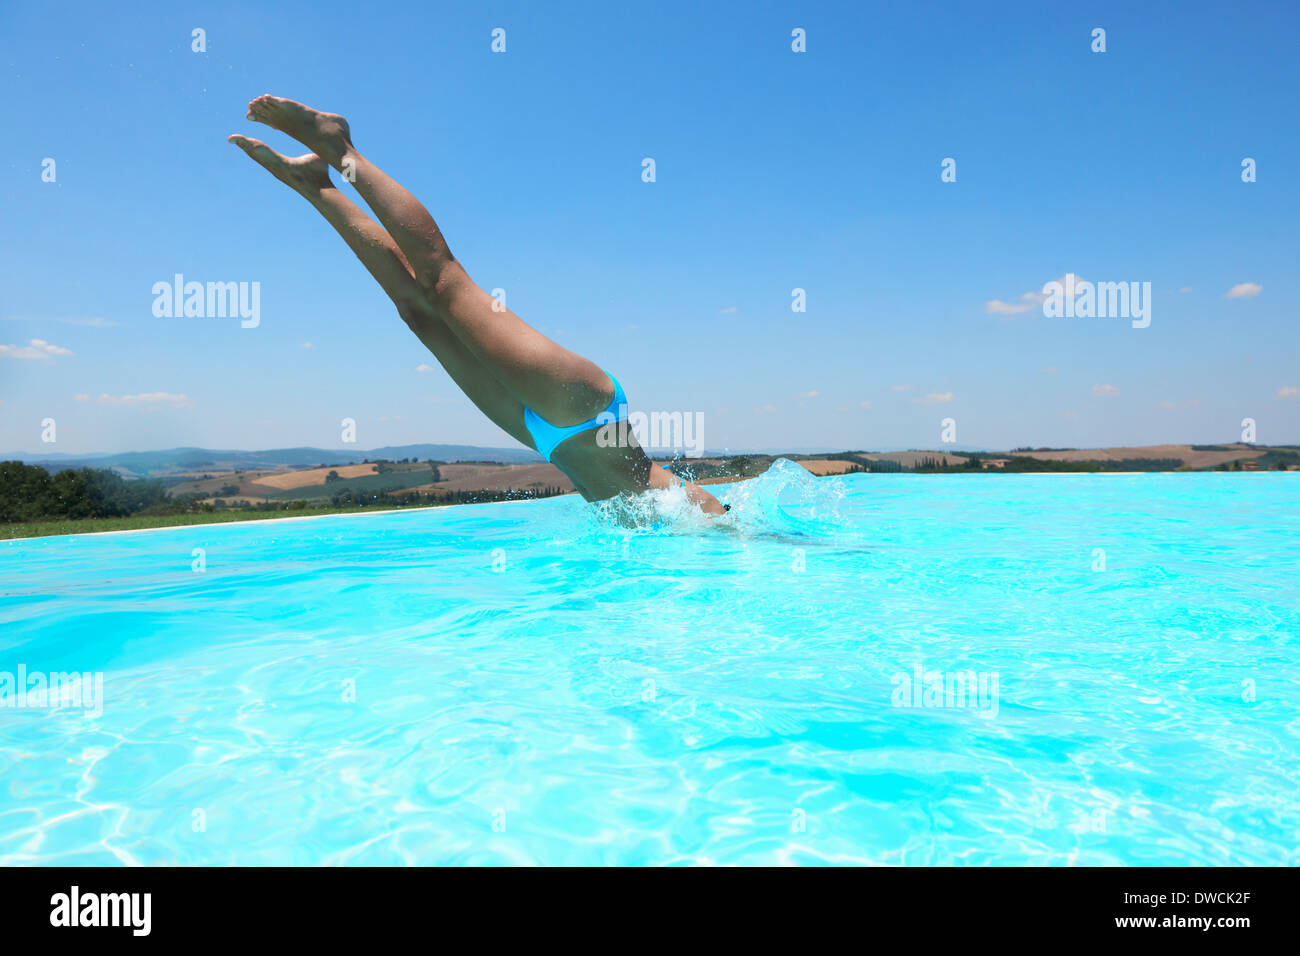 Mid adult woman diving into swimming pool - Stock Image